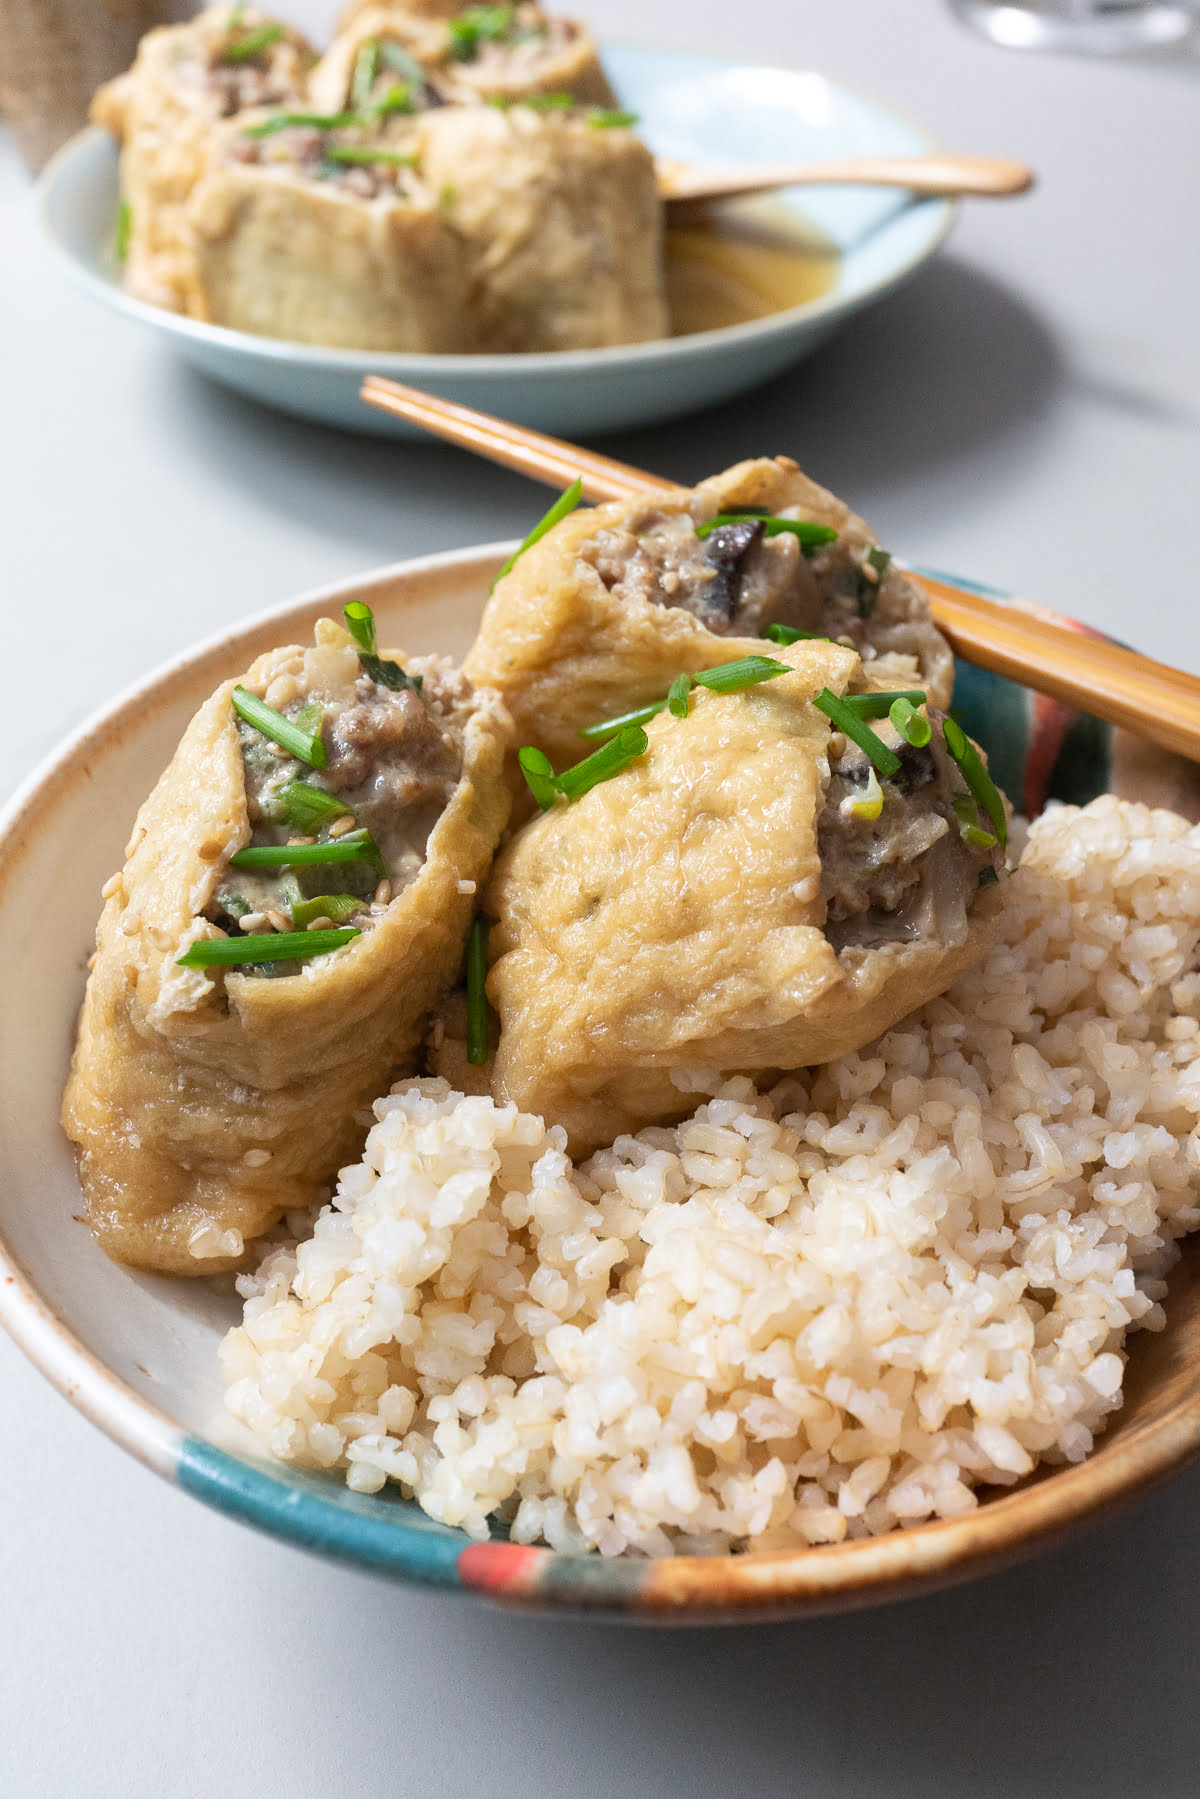 Three pieces stuffed aburage served with a bowl of rice.